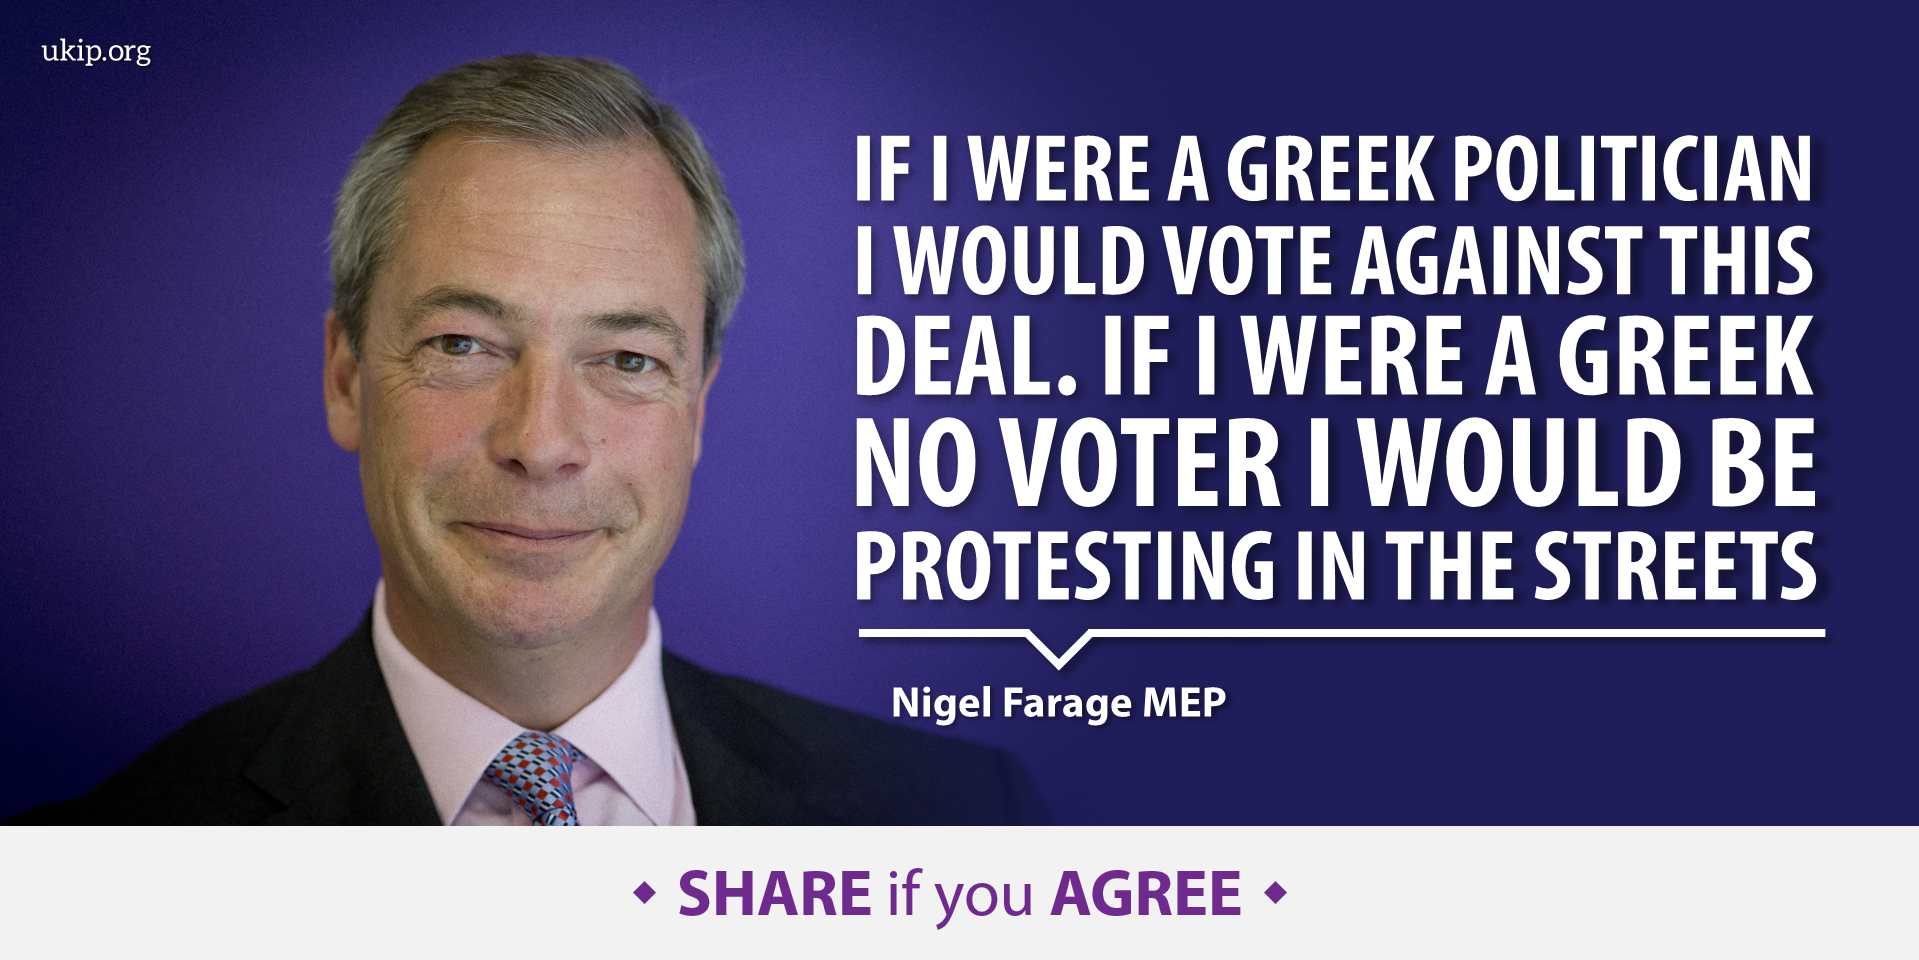 farage-quote-beinggreek-share.png